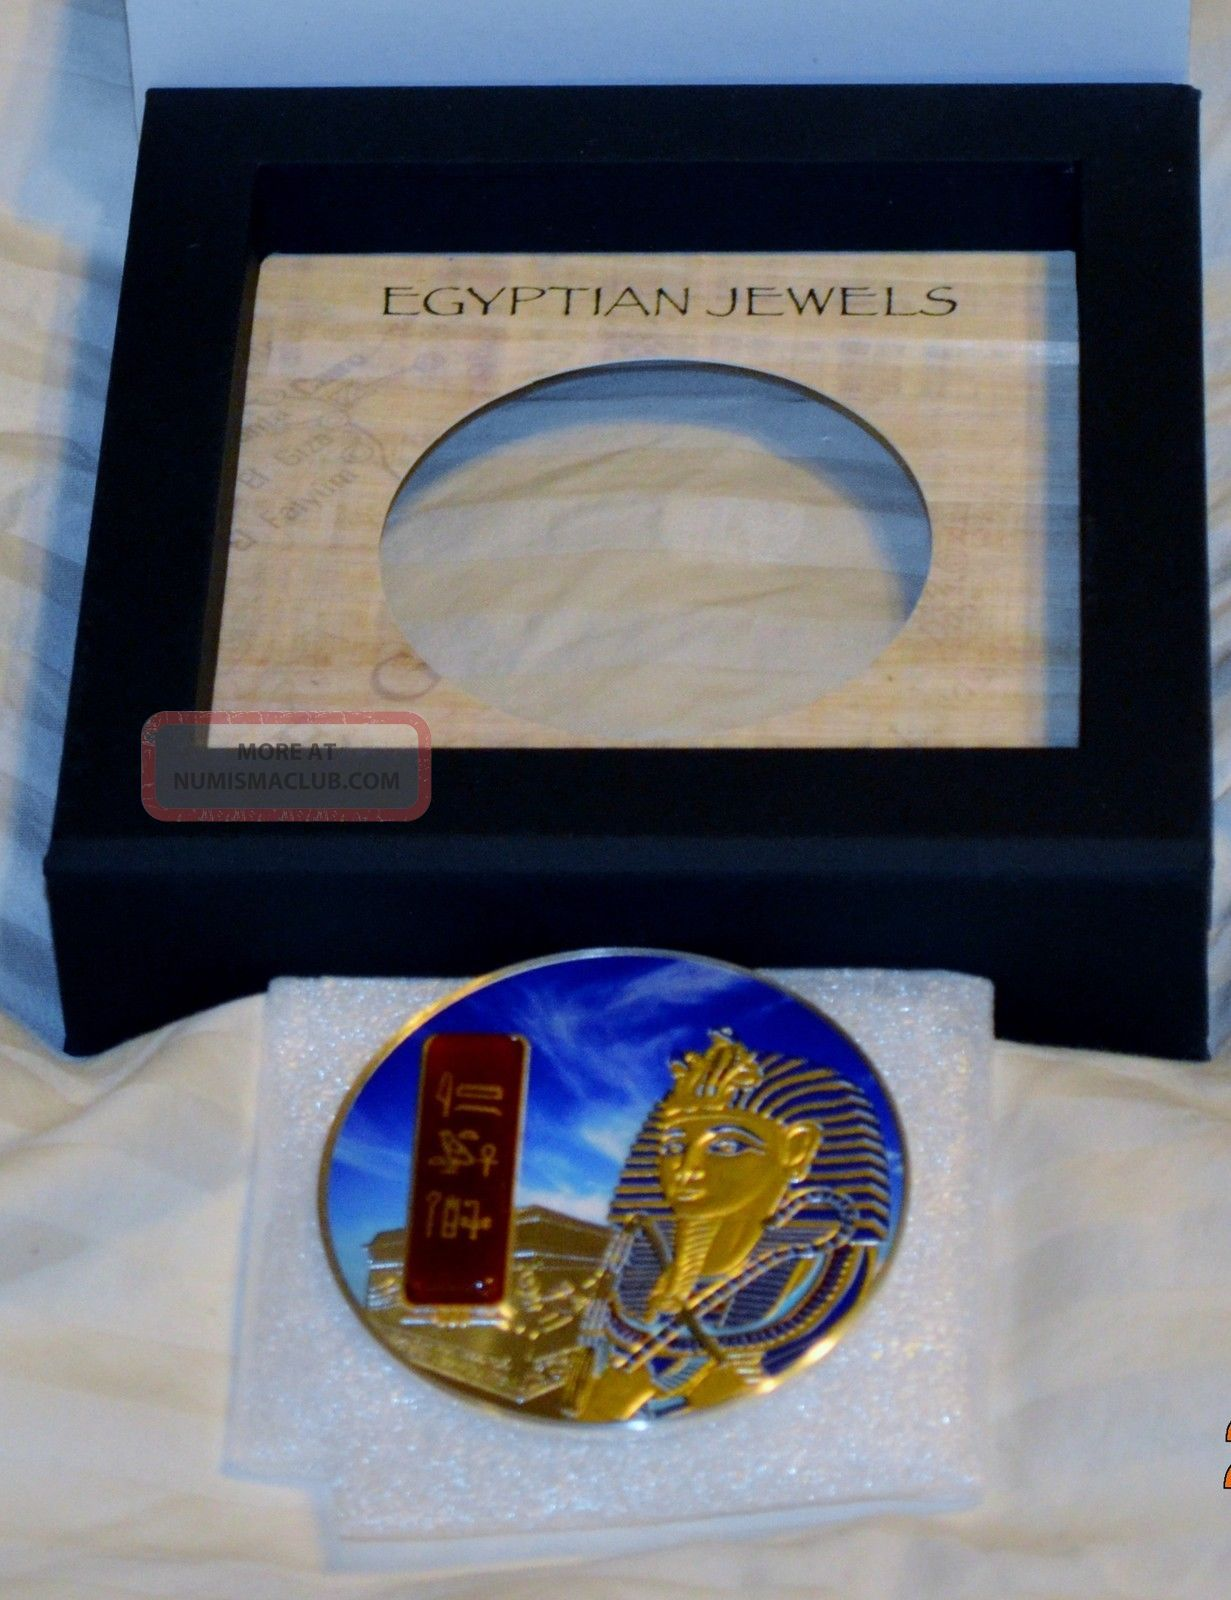 Fiji 2012 Proof Silverl 50 Egyptian Jewels Tutankhamun